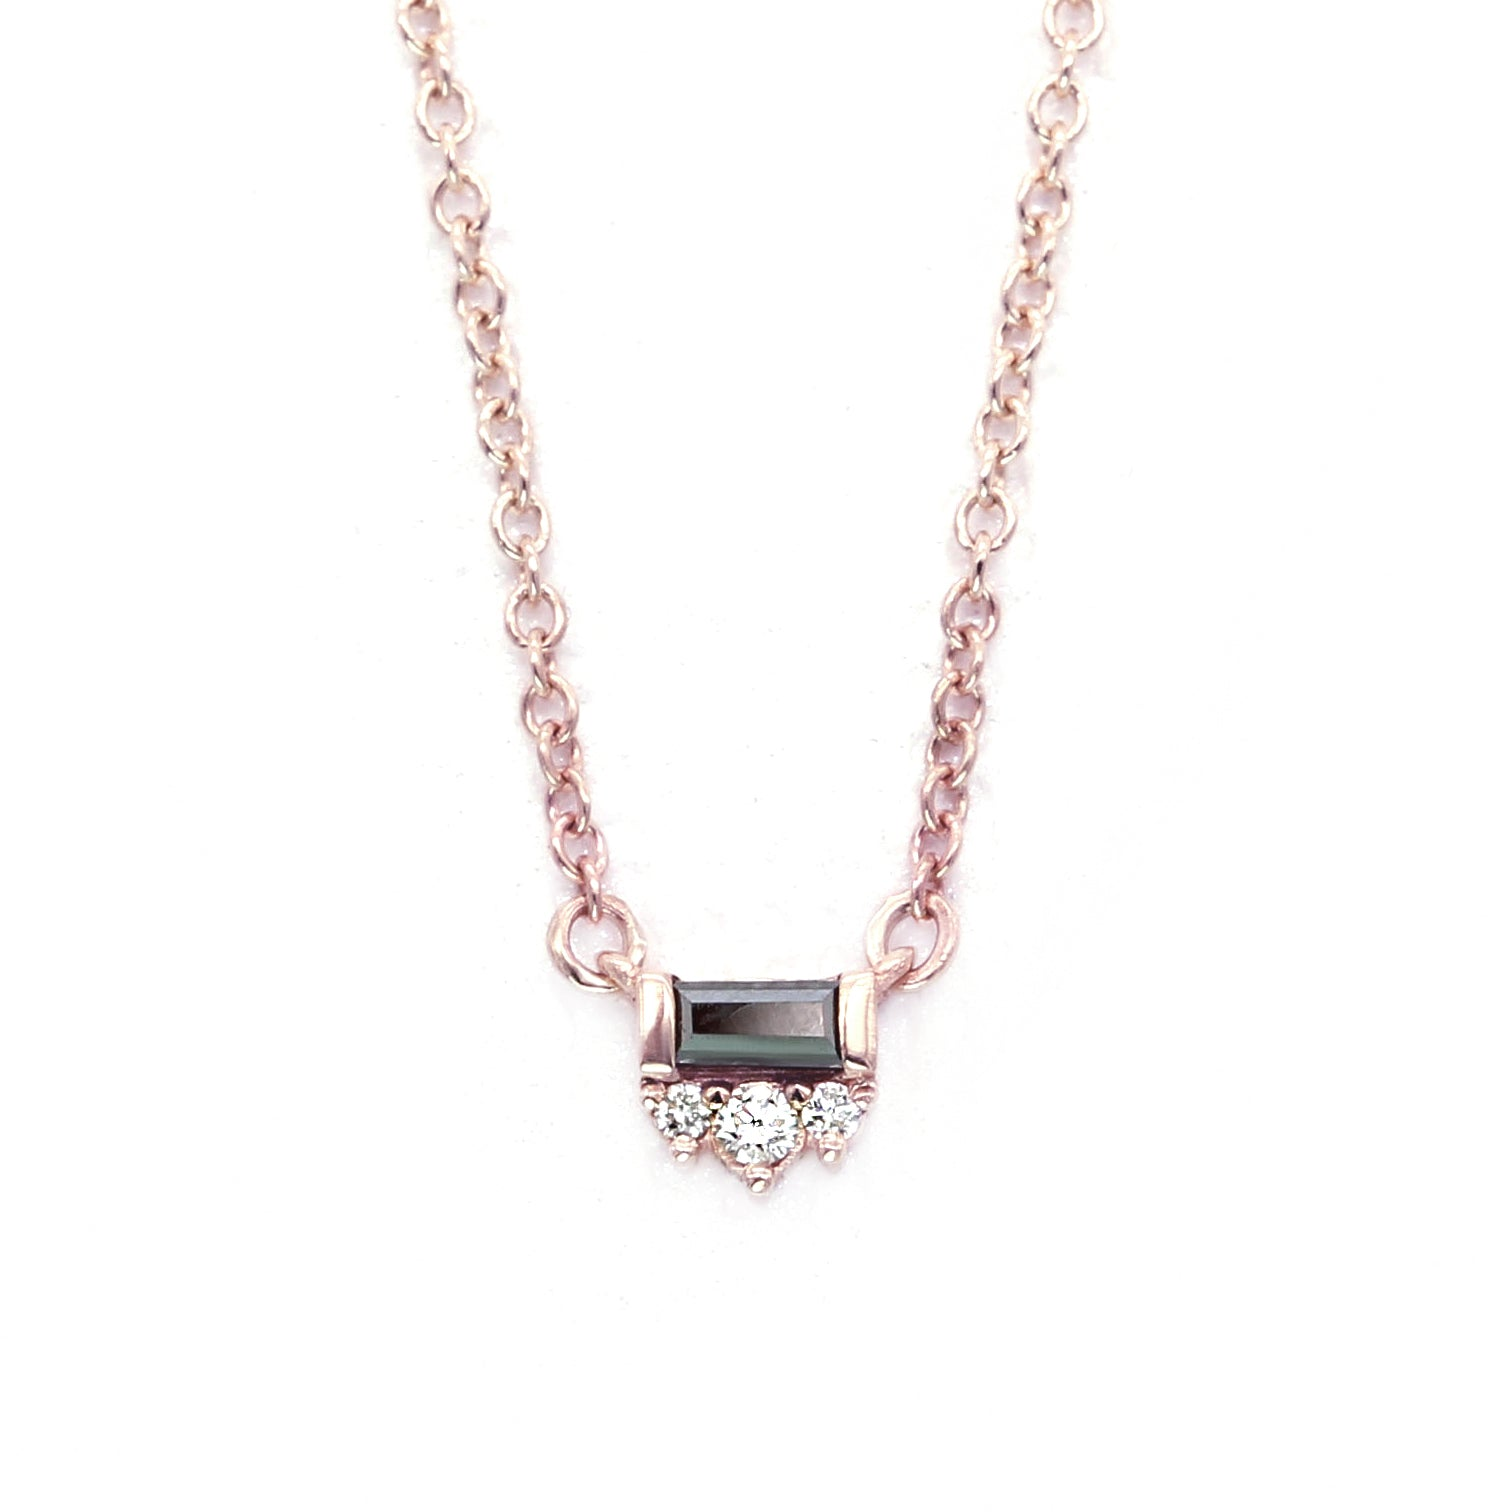 Black Tie Necklace - Baguette Black Diamond & White Diamonds - Rose Gold